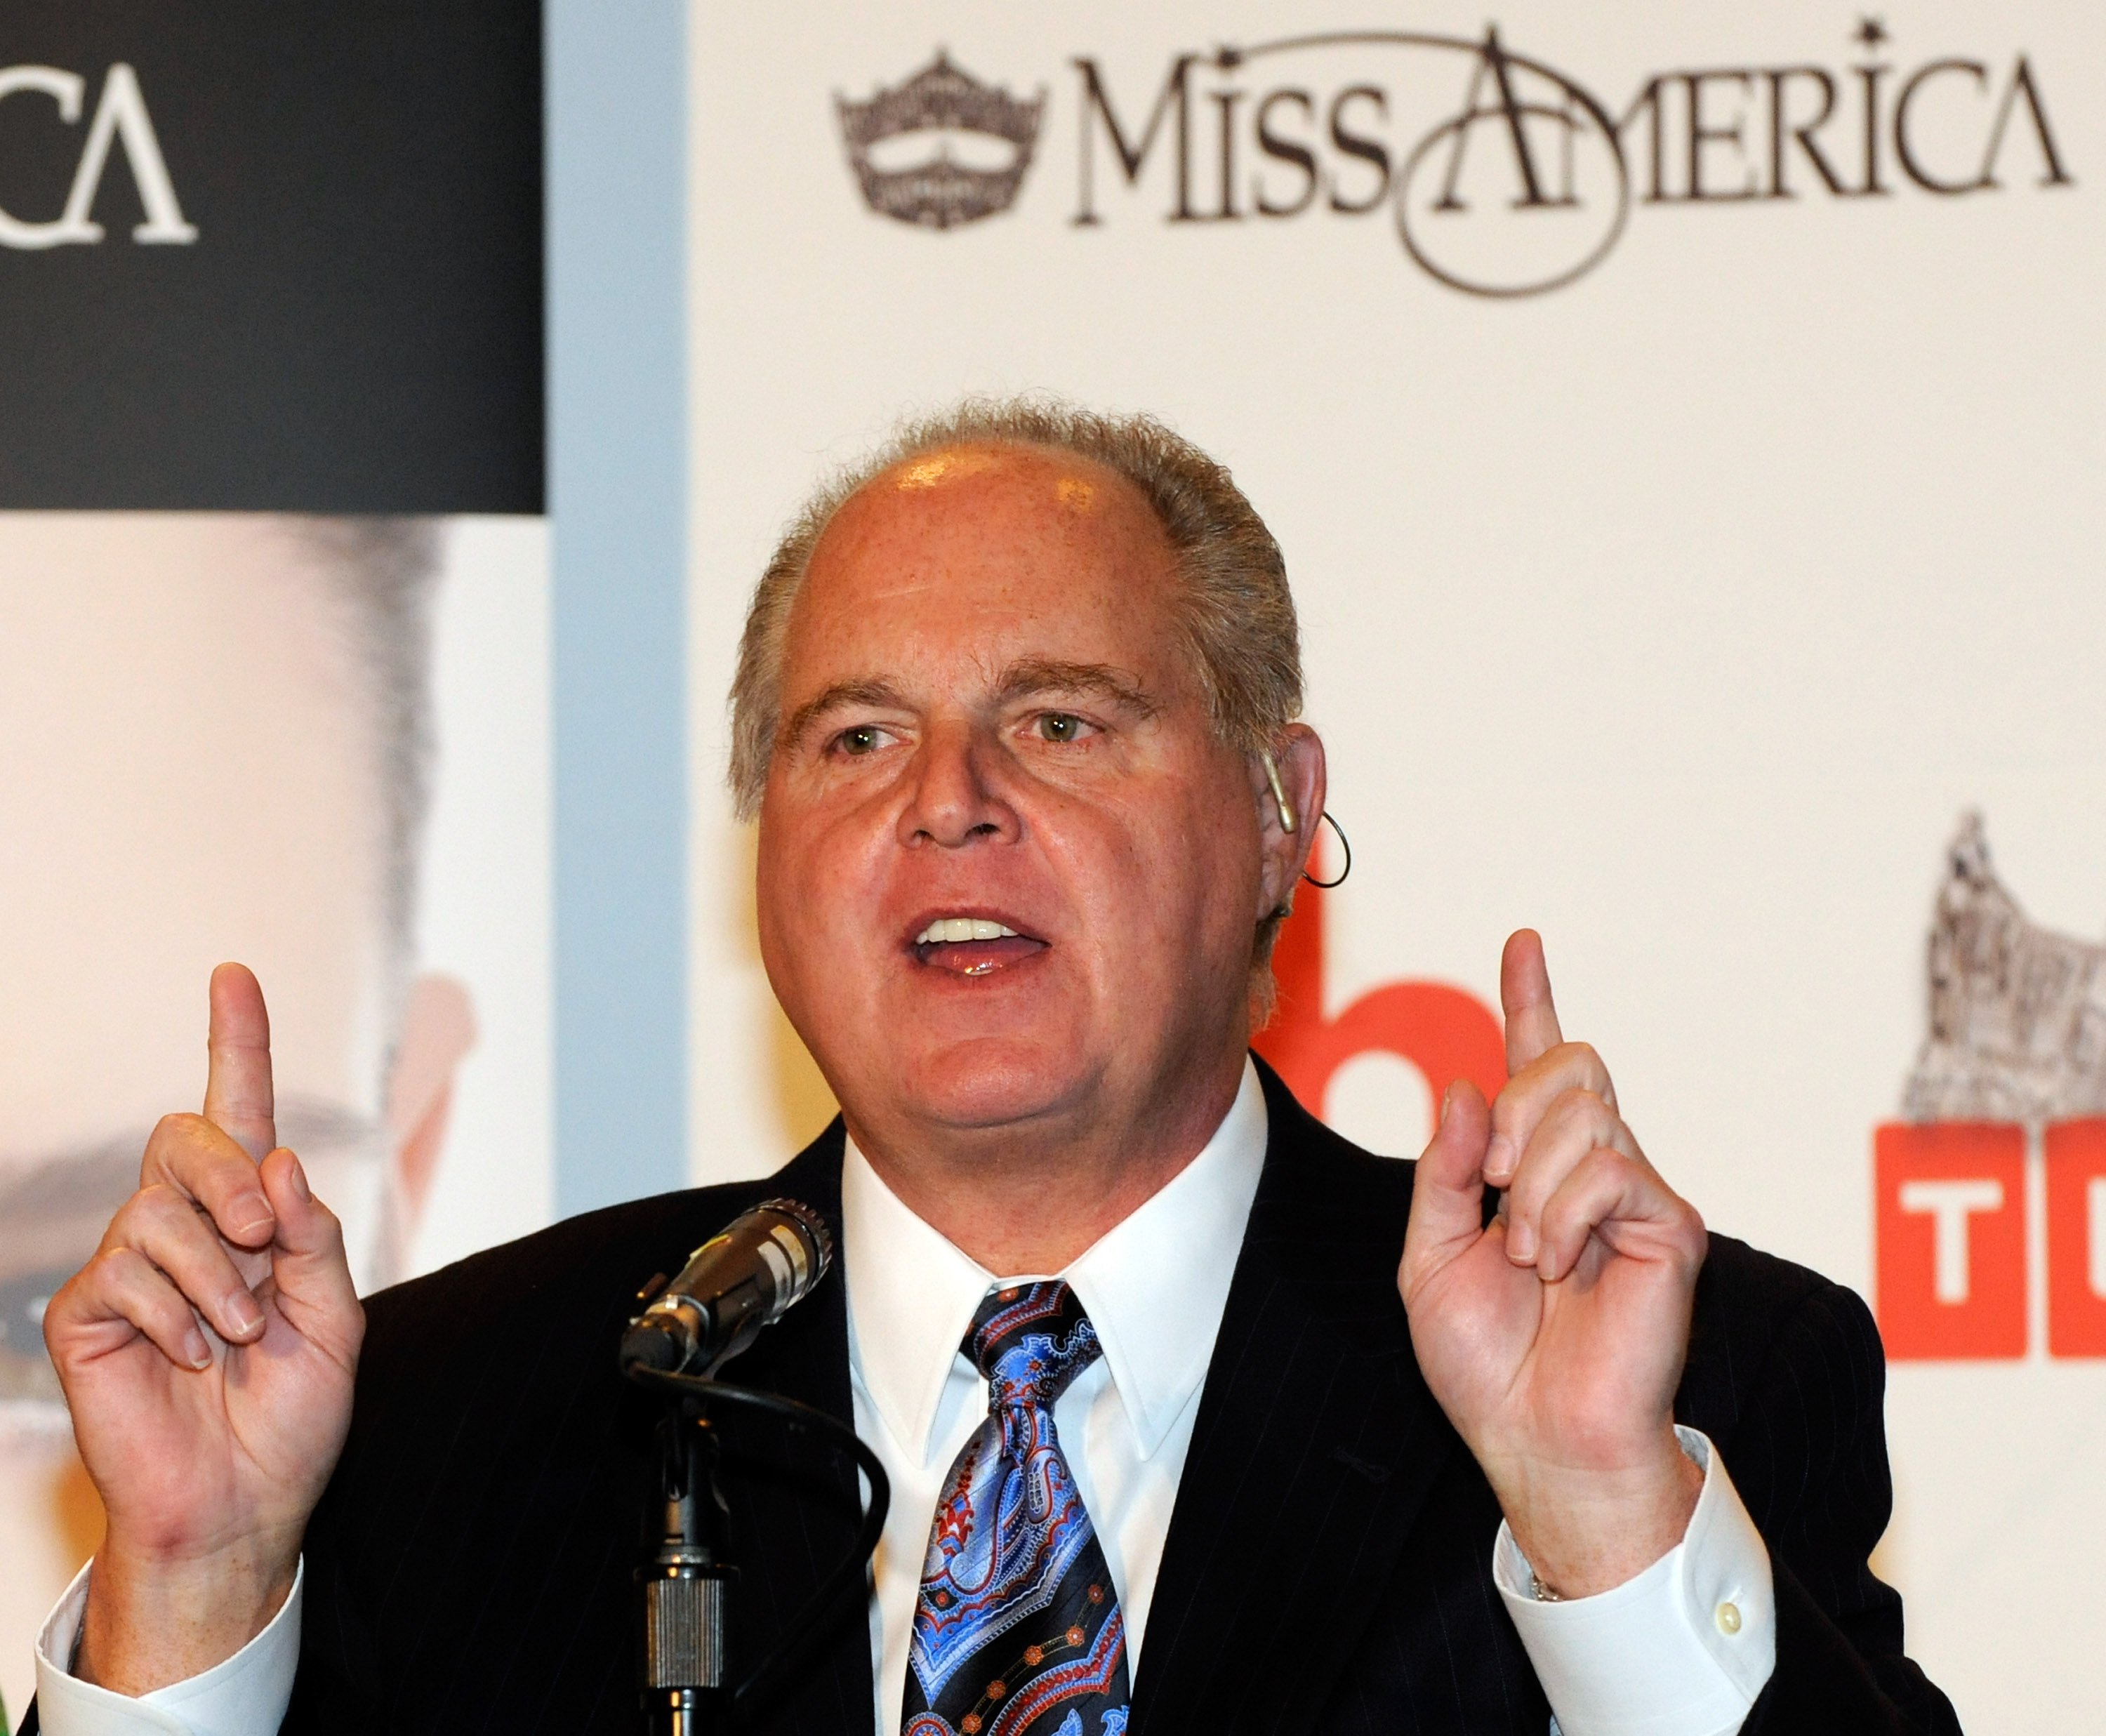 2010 Miss America Pageant Judges News Conference